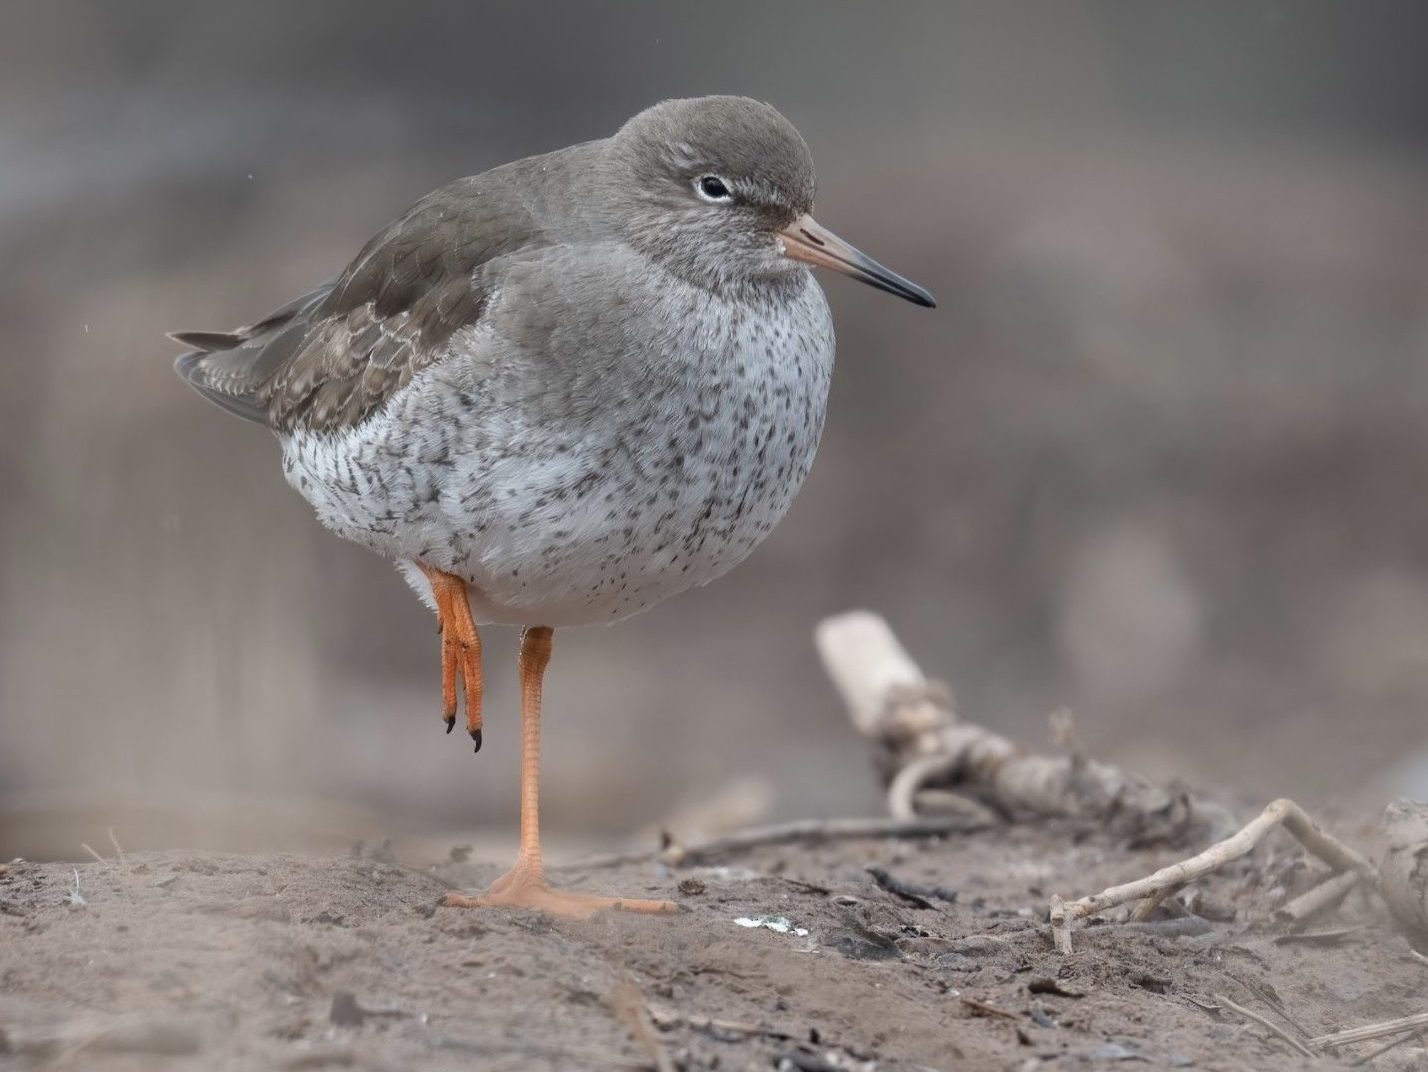 Common Redshank on one foot